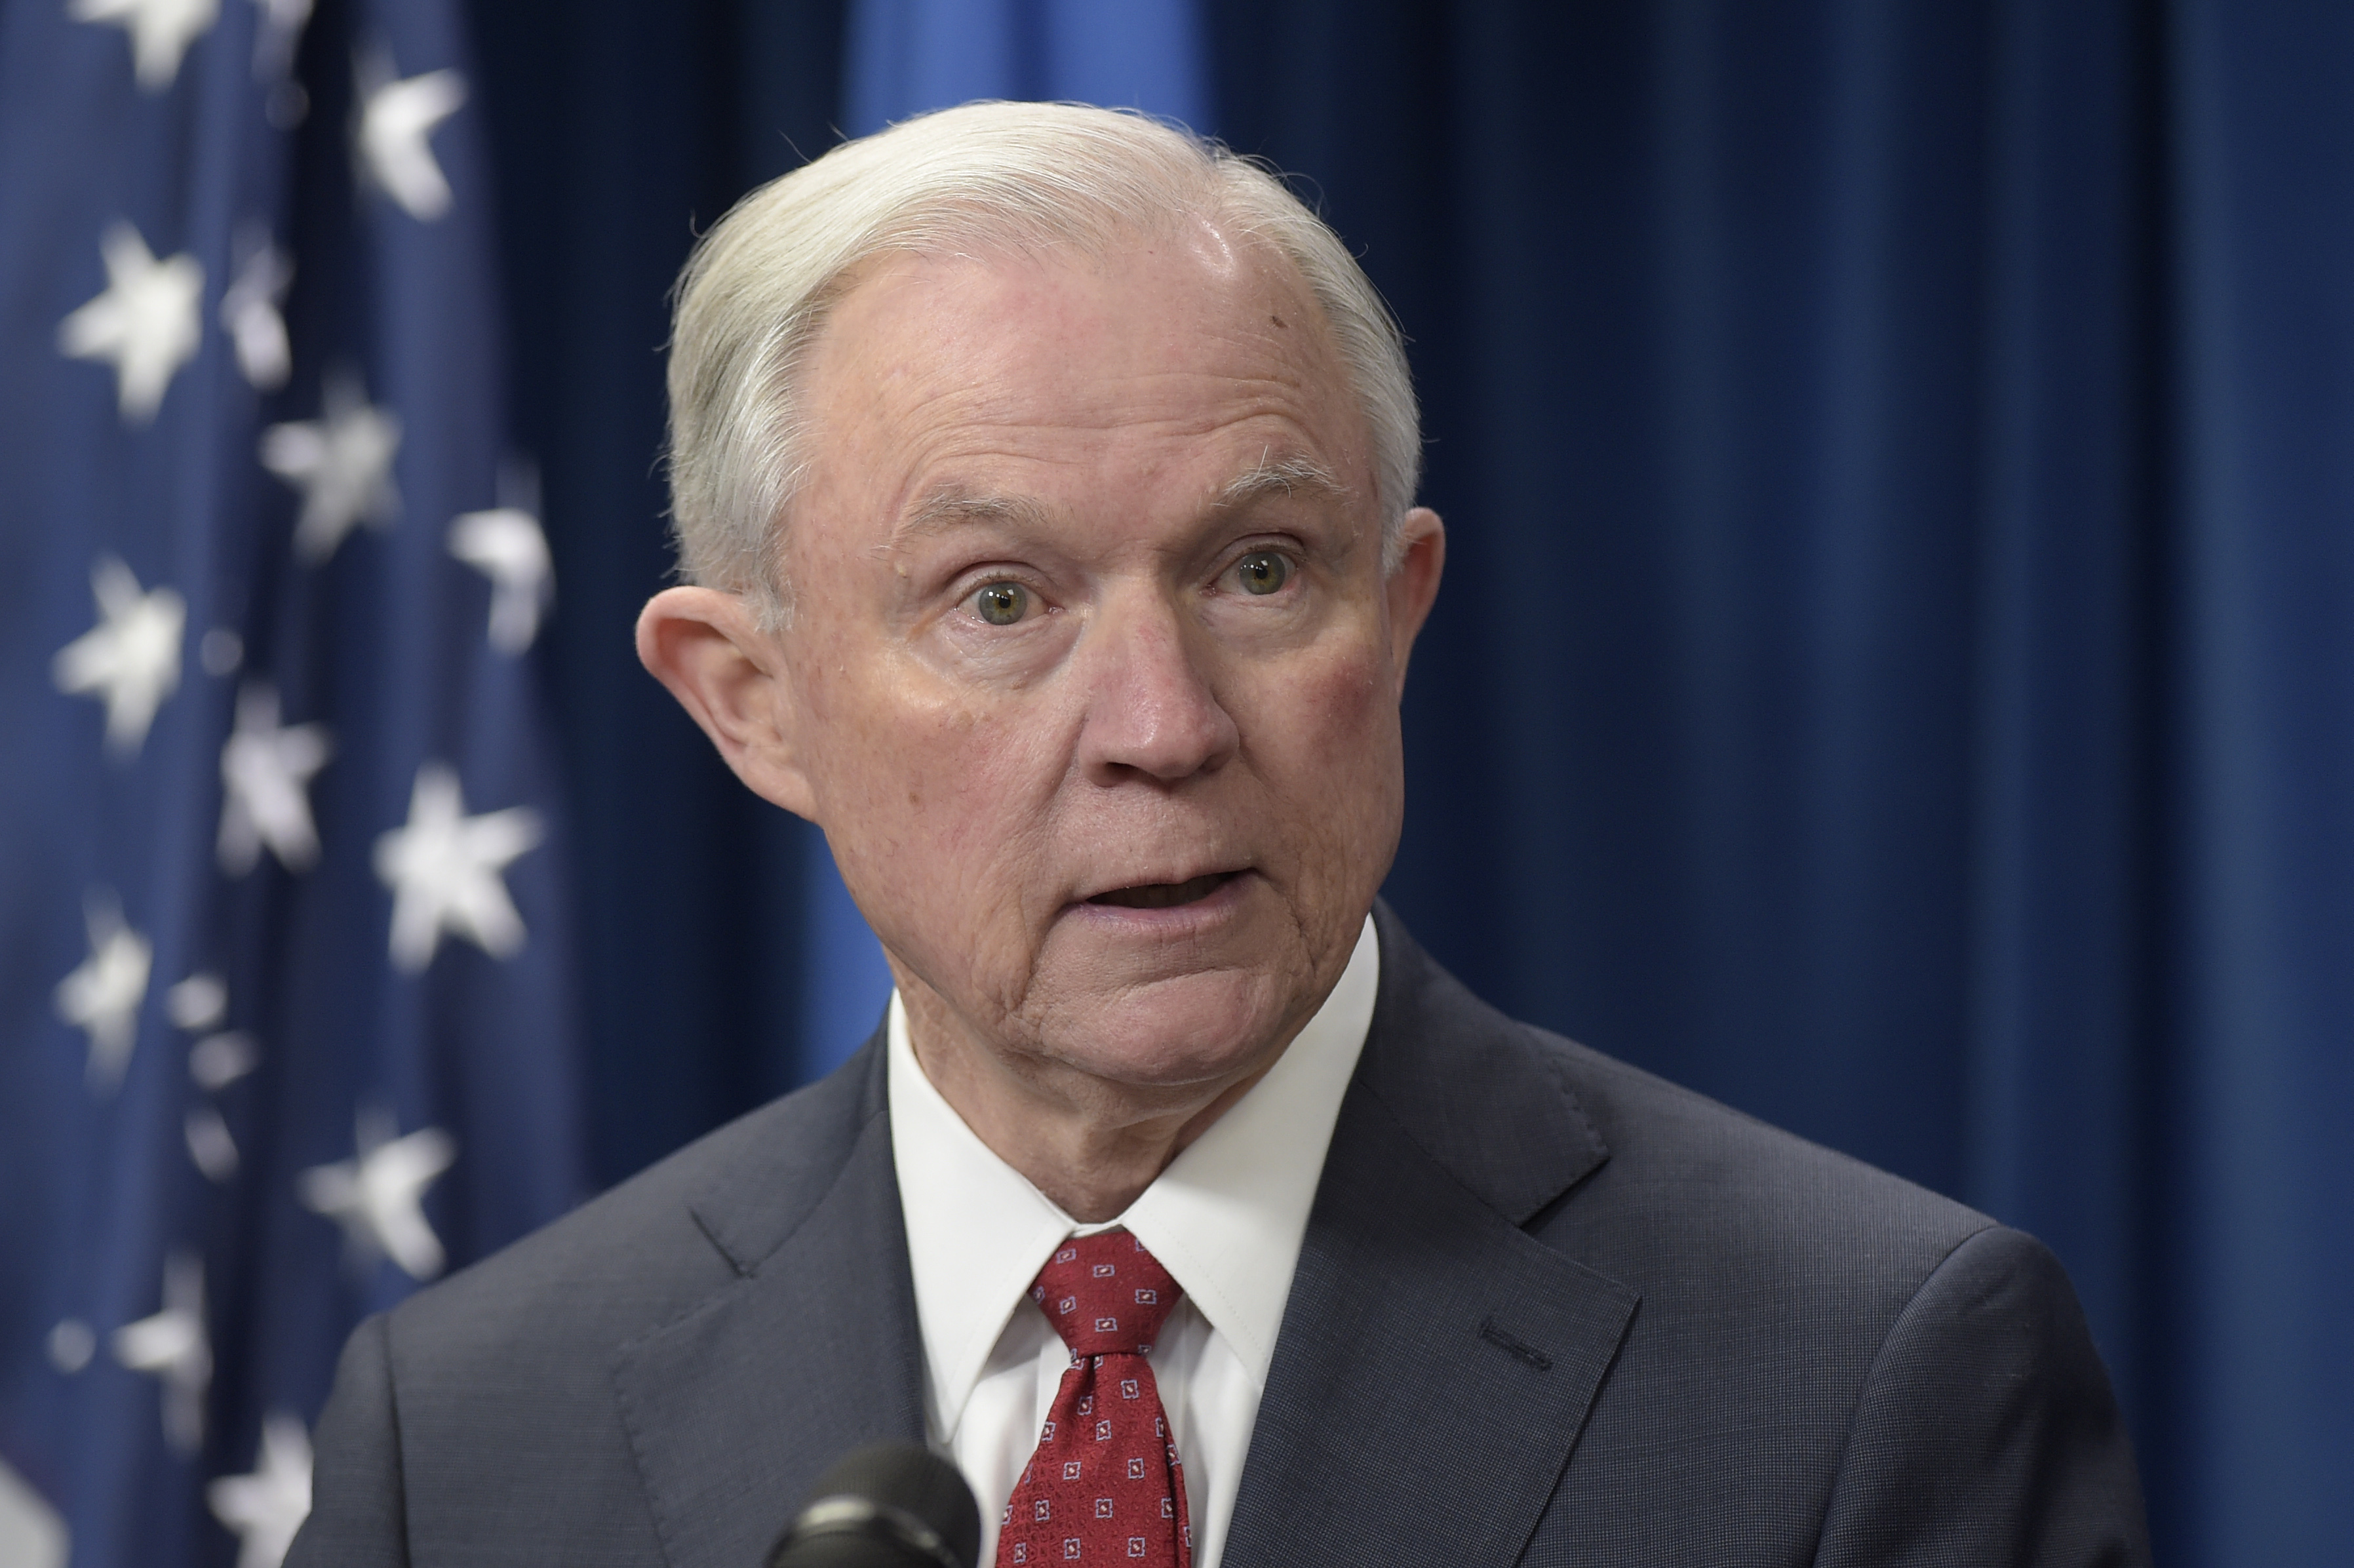 Attorney General Jeff Sessions speaks at the U.S. Customs and Border Protection office in Washington. Sessions whose contacts with Russia's ambassador to the U.S. during the presidential campaign has sparked questions agree